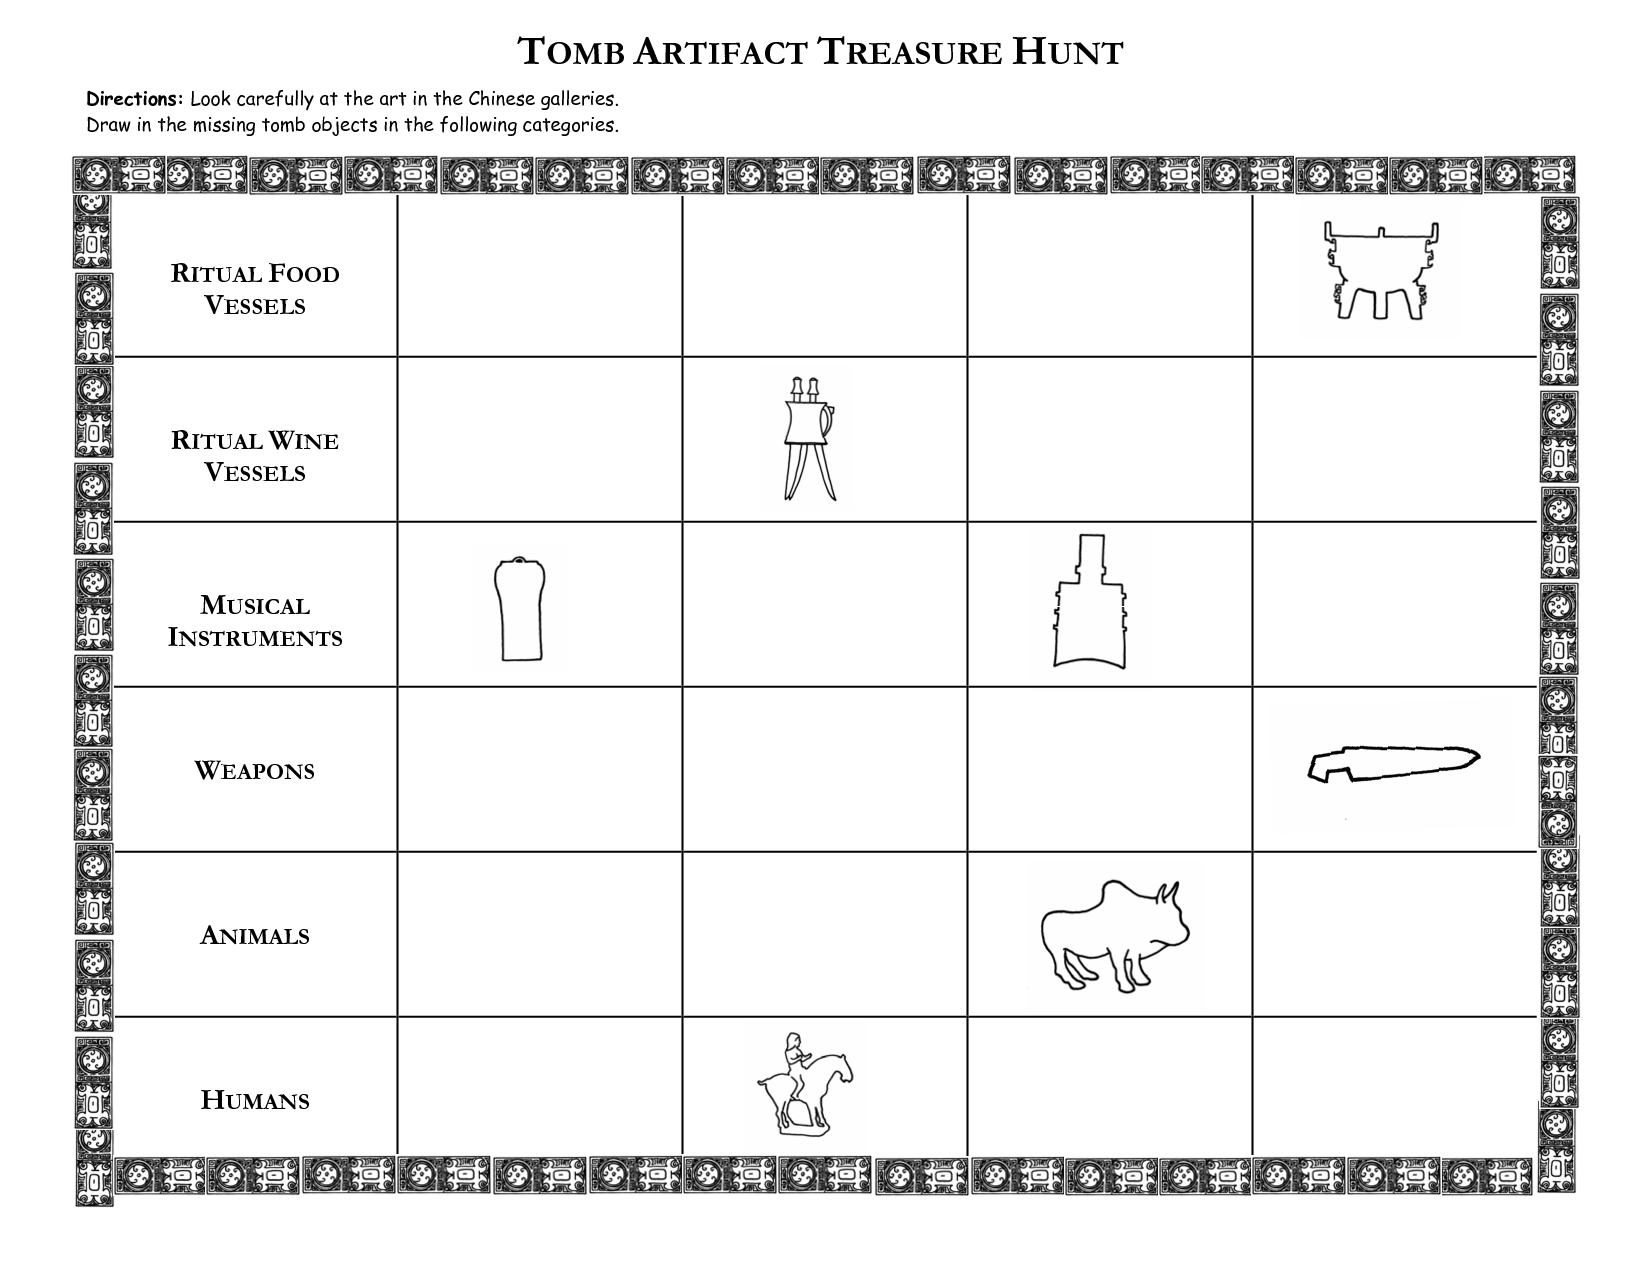 worksheet Ancient China Worksheets ancient china worksheets tomb artifact treasure hunt directions look